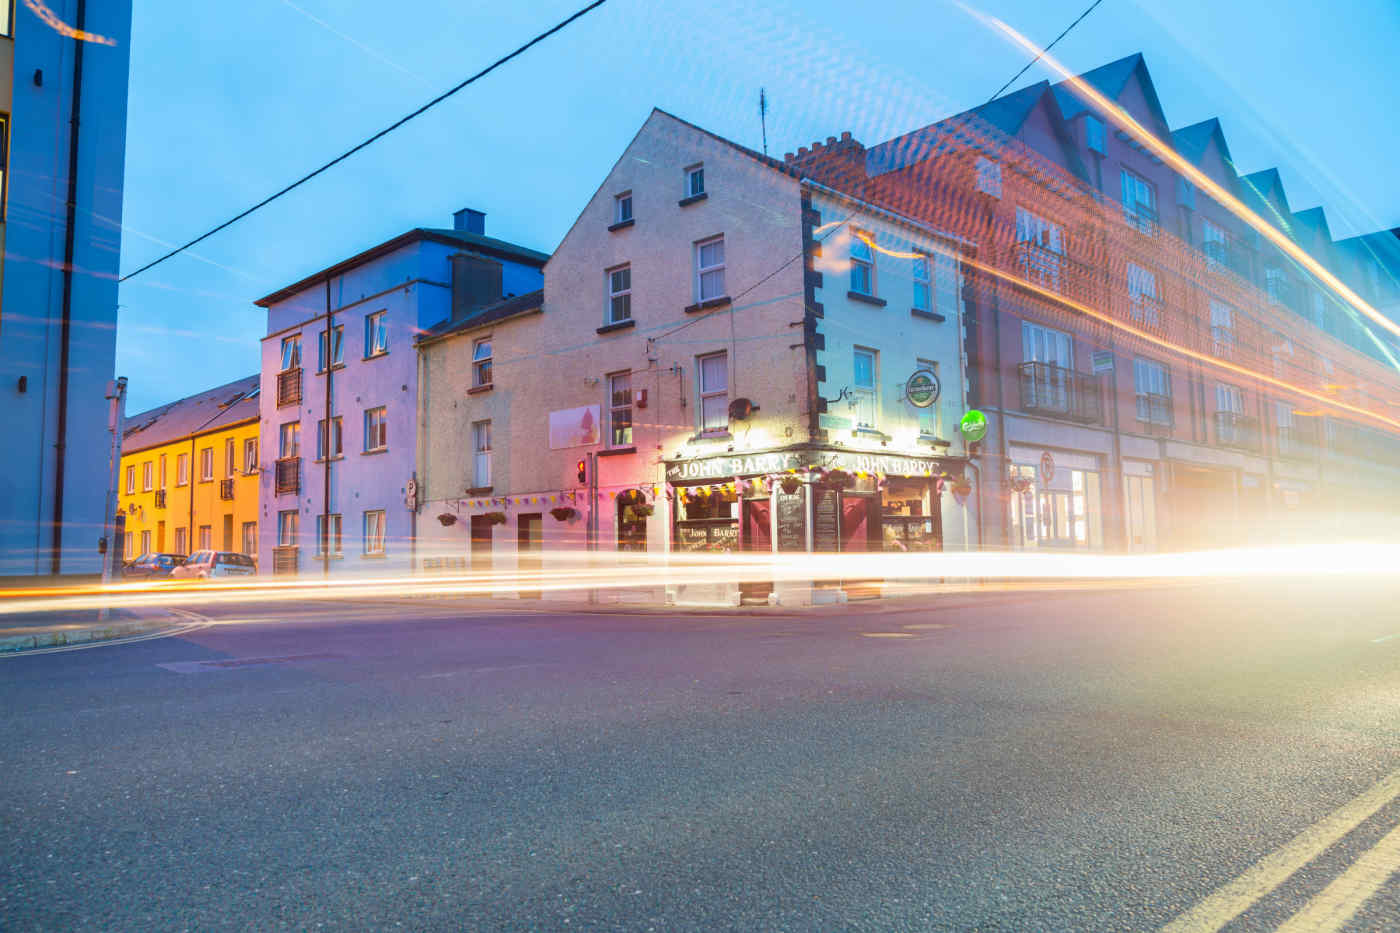 Wexford at night